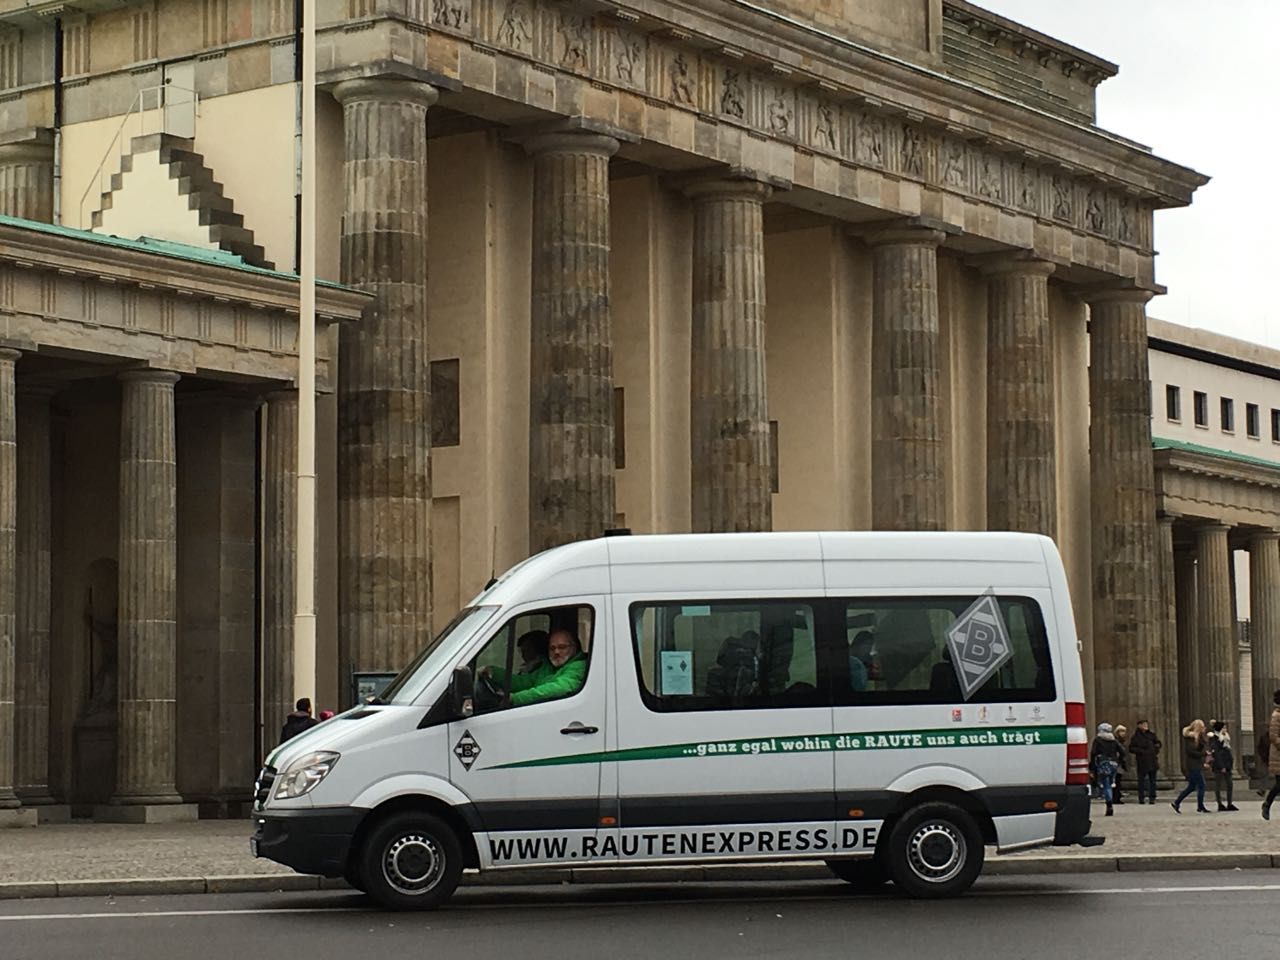 Andreas am Steuer des  Rautenexpress am Brandenburger Tor